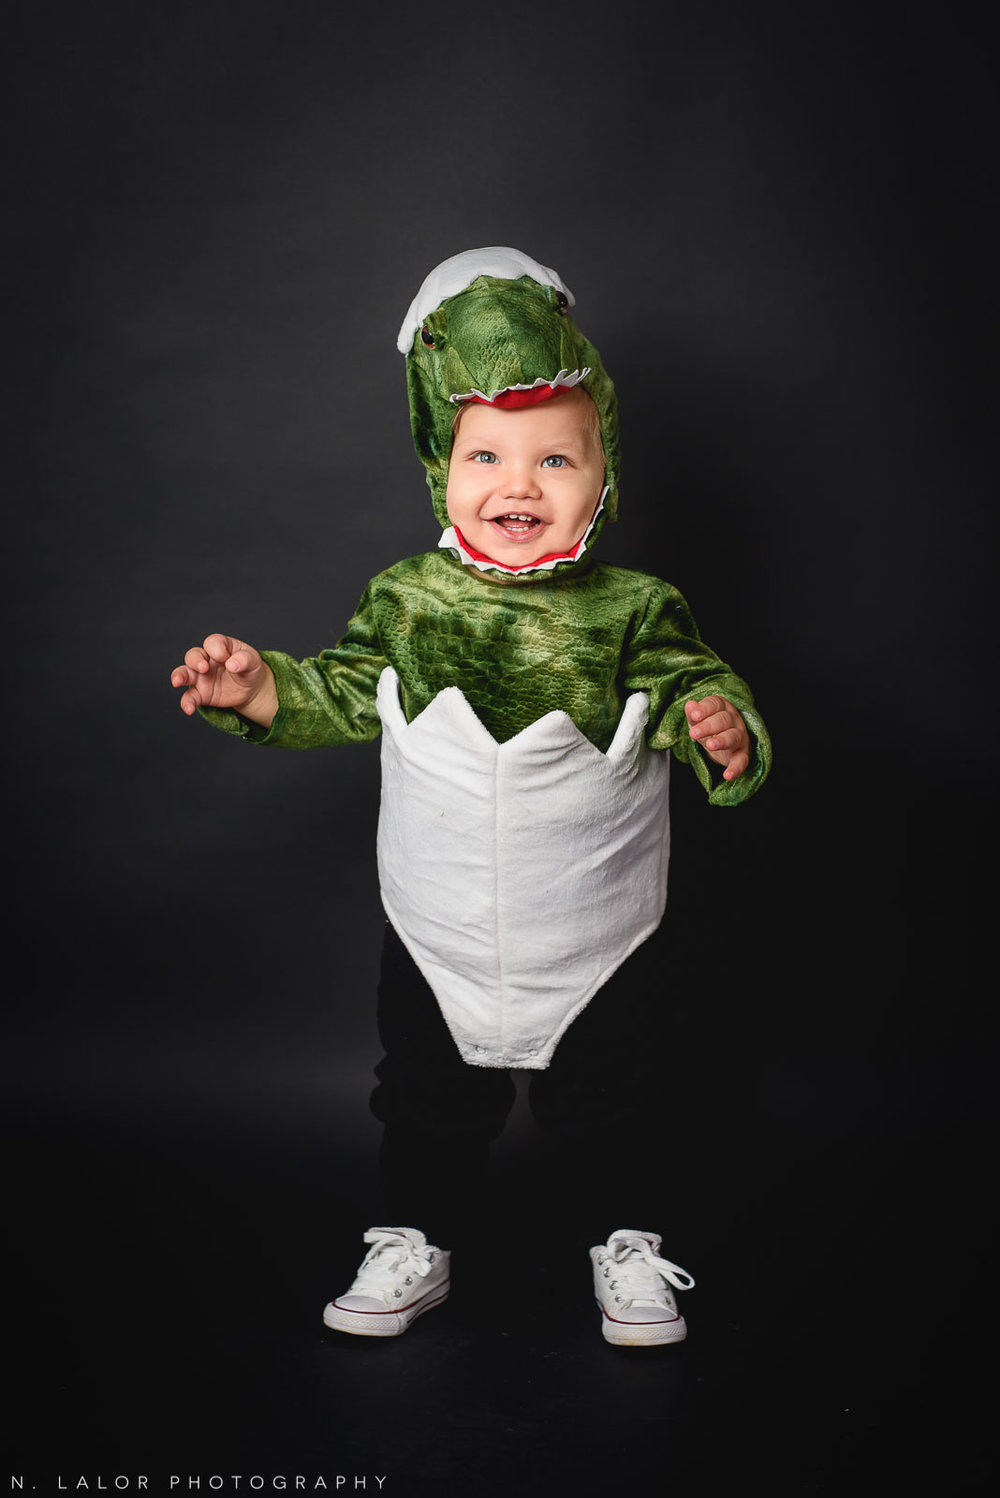 Baby dinosaur costume! Kids Halloween Portrait by N. Lalor Photography in Greenwich, Connecticut.